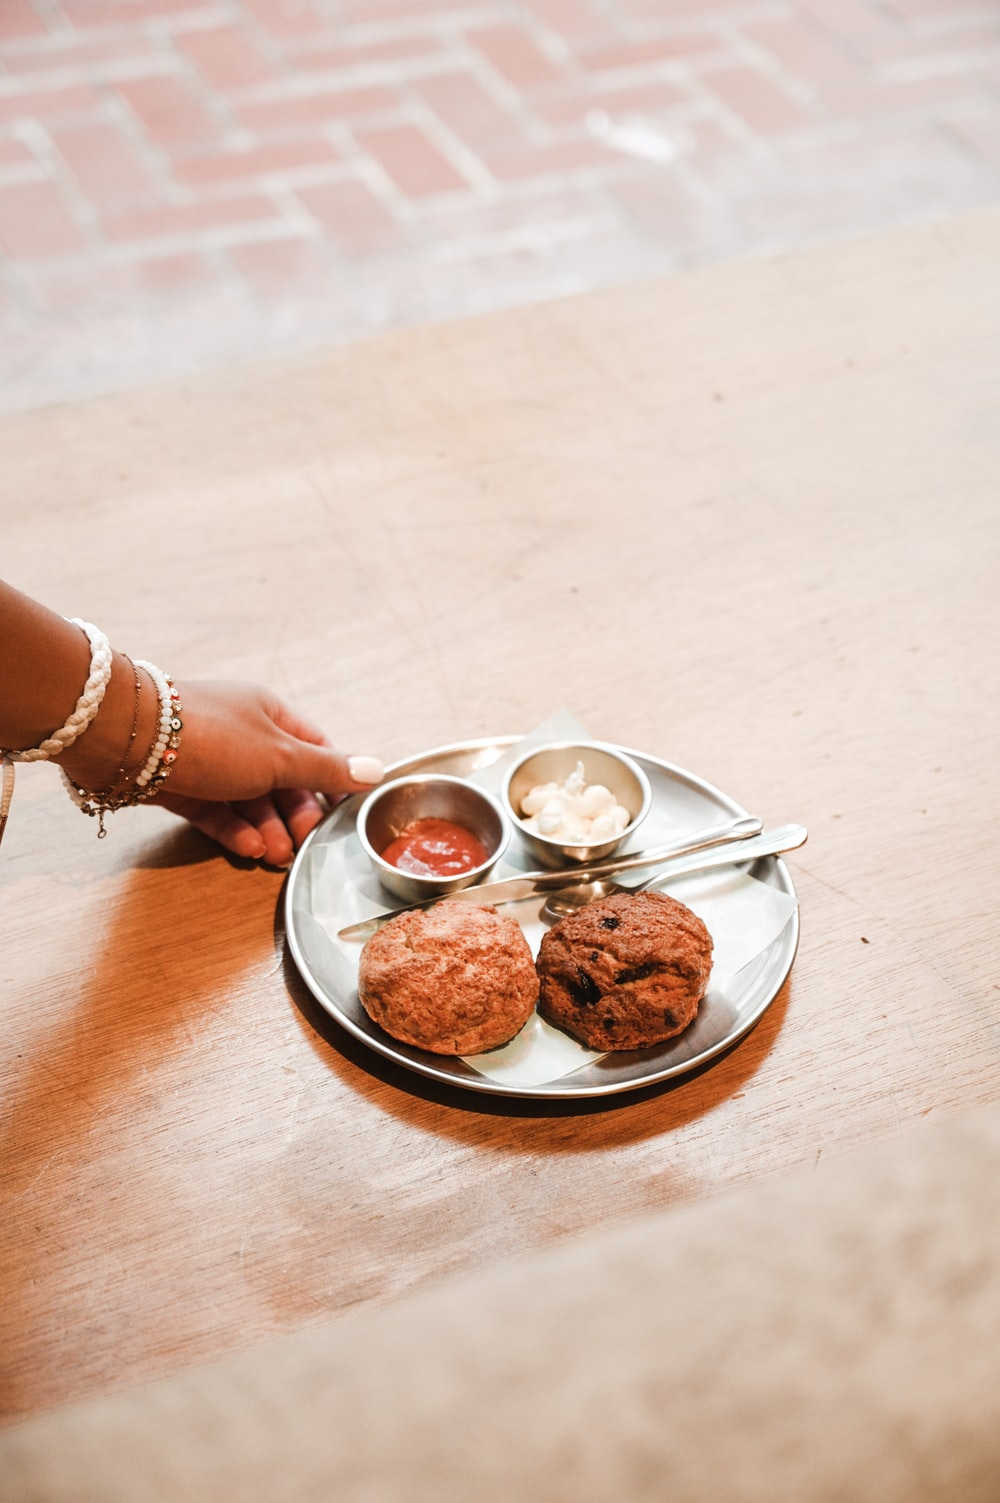 person holding white ceramic bowl with food